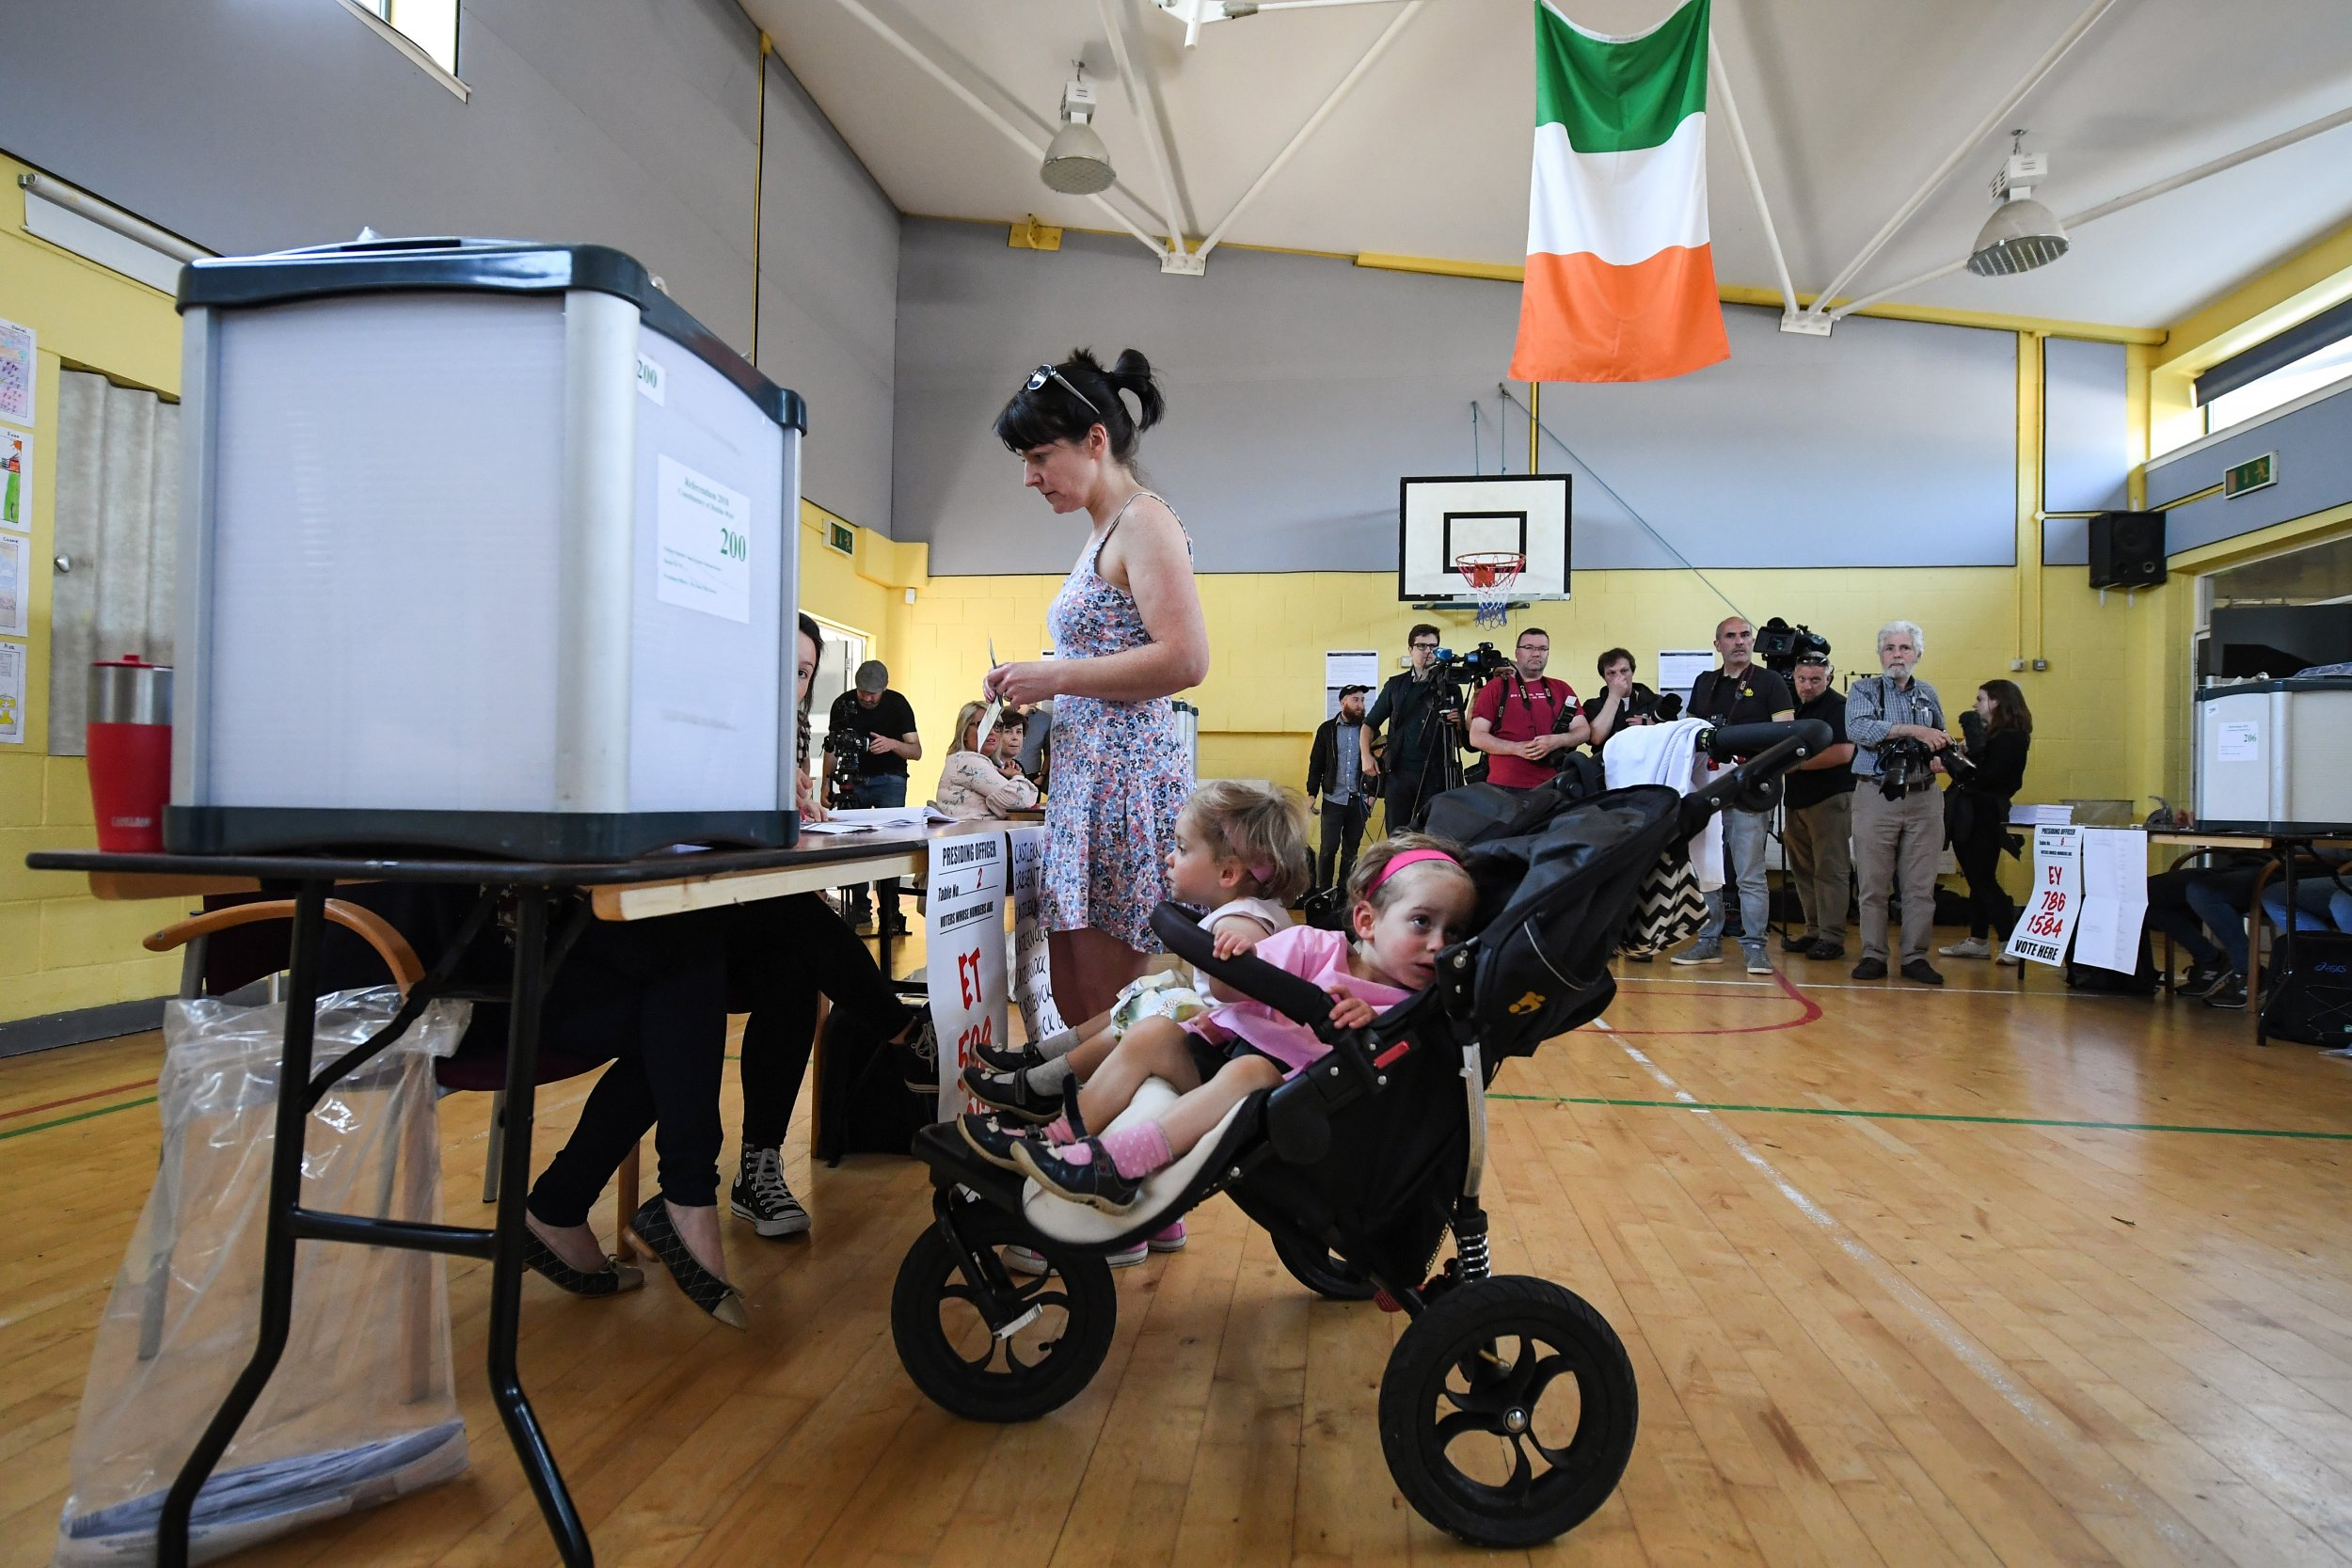 Where is Abortion Legal? Ireland Votes to Repeal Eighth ...